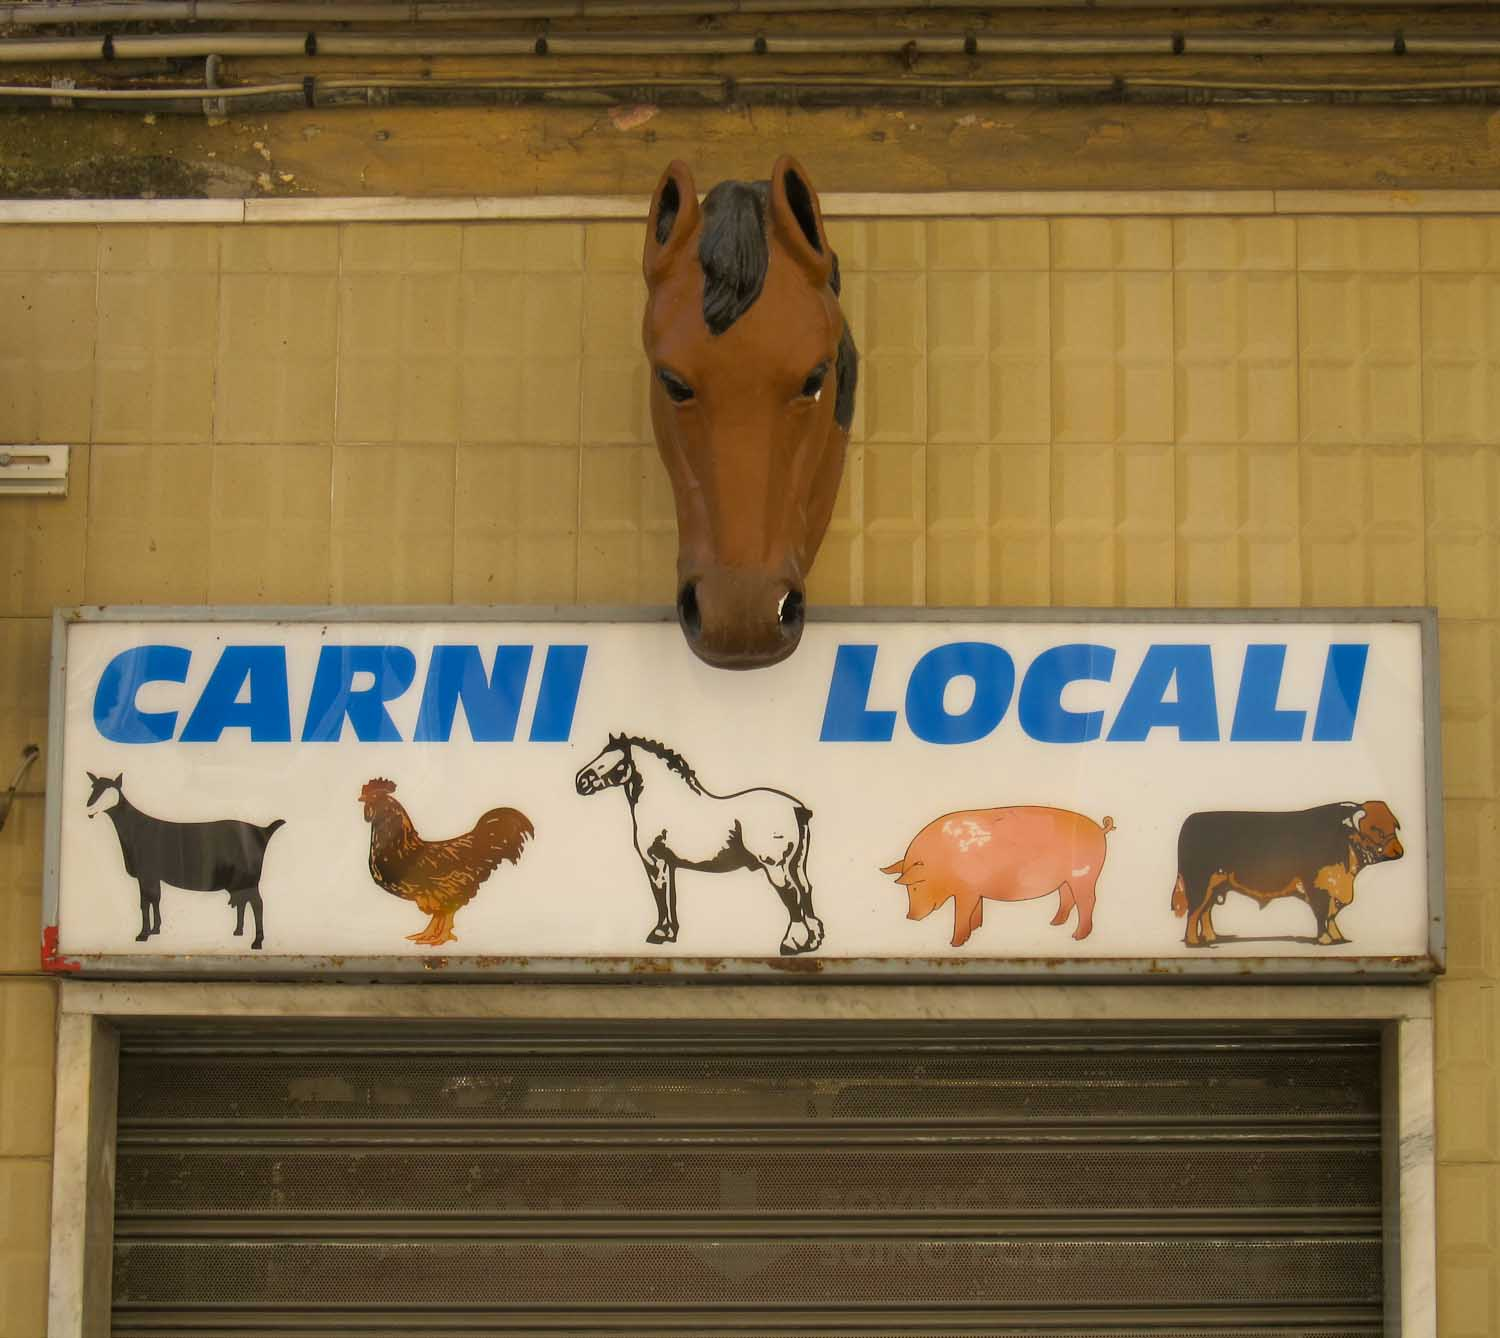 Horse meat butchers in Italy